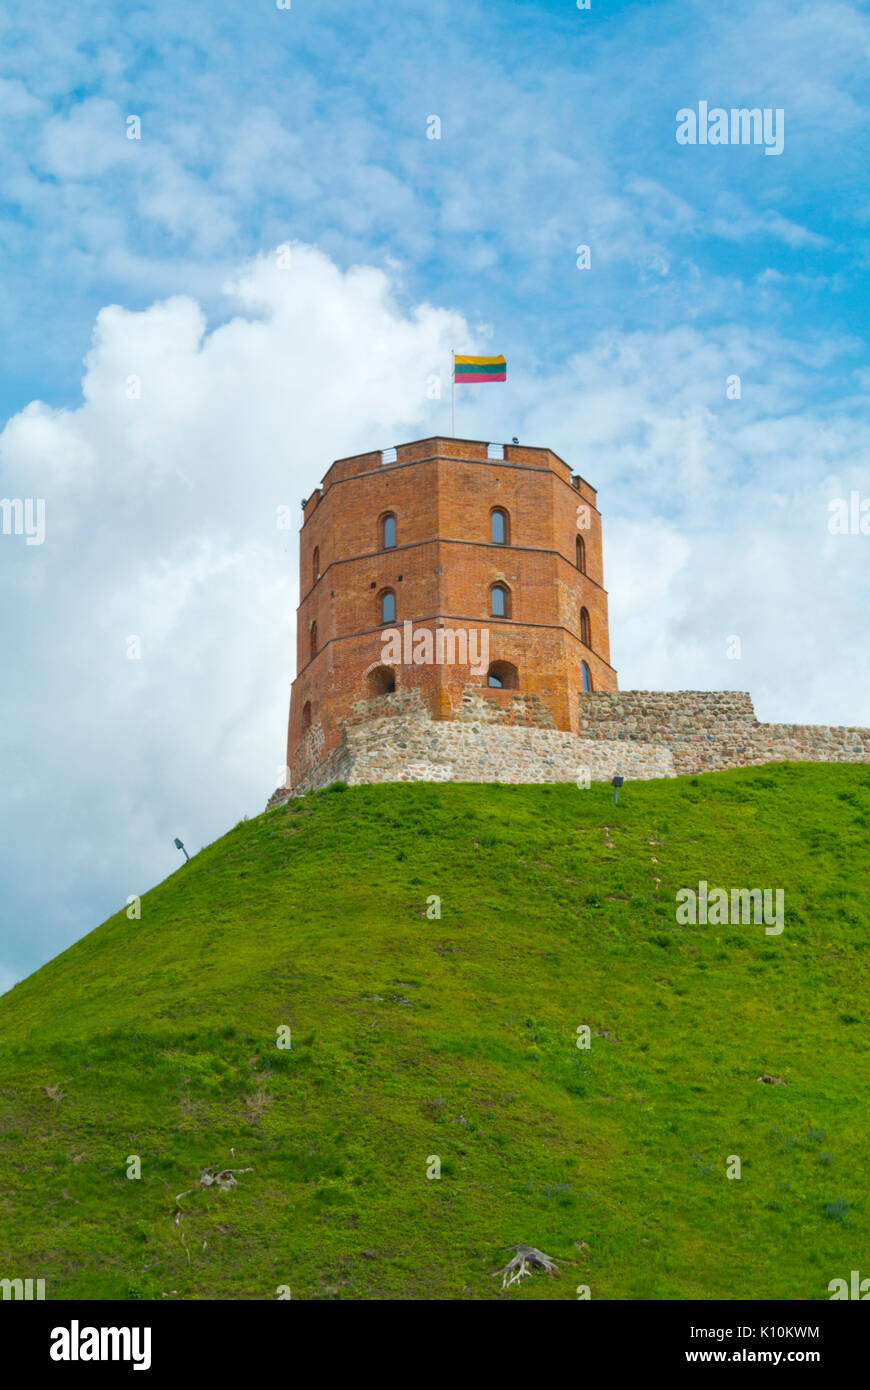 Gediminas' Tower of the Upper Castle, Gedanimnas hill, Vilnius, Lithuania - Stock Image